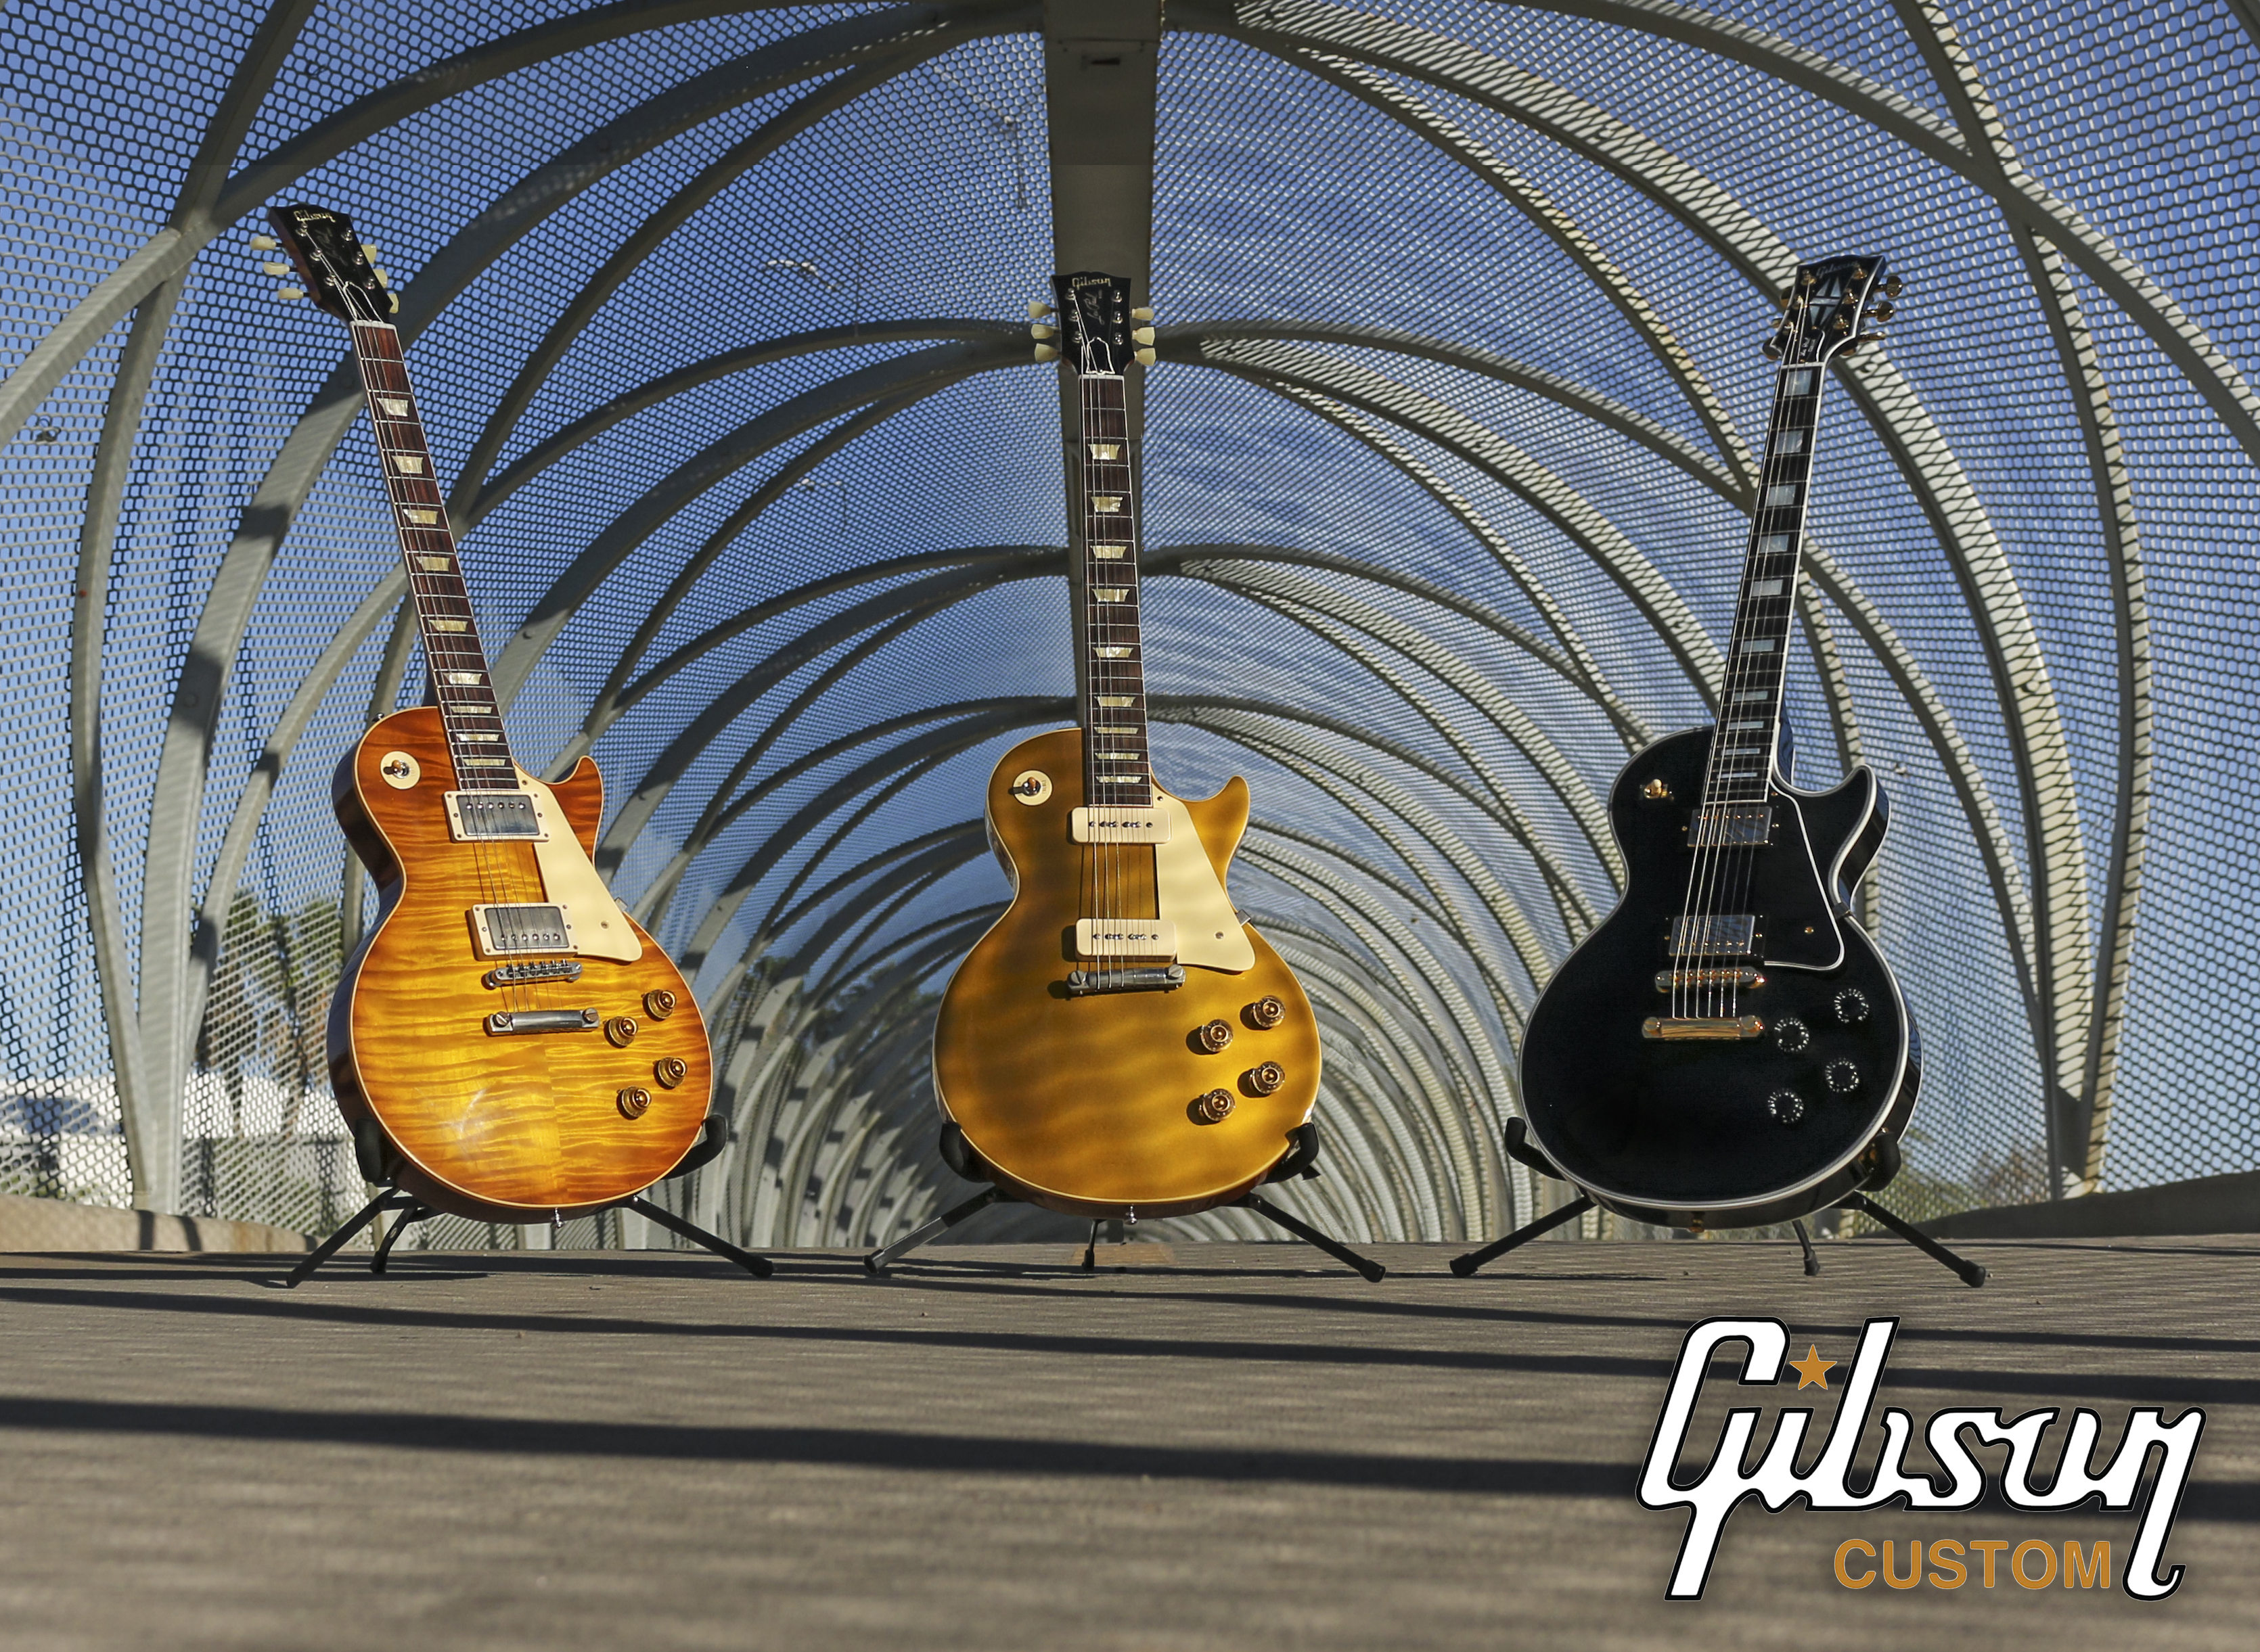 Custom Gibson & Fender Vintage Guitars & Musical Gear at